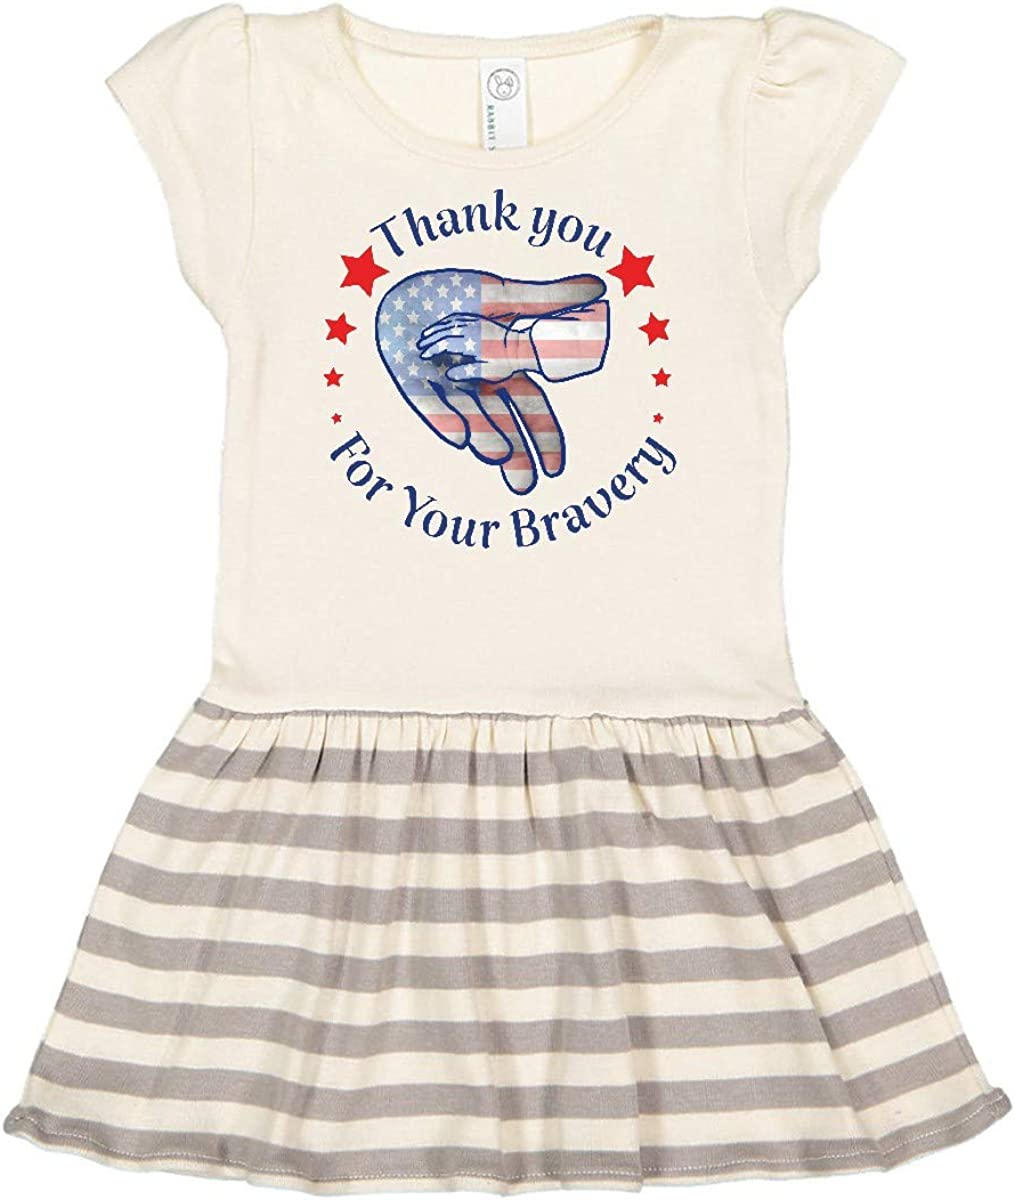 M2VIK9 Baby Romper Short Sleeve Clothes Jumpsuit Memorial Day Rose and American Flag Bodysuit Playsuit Outfits